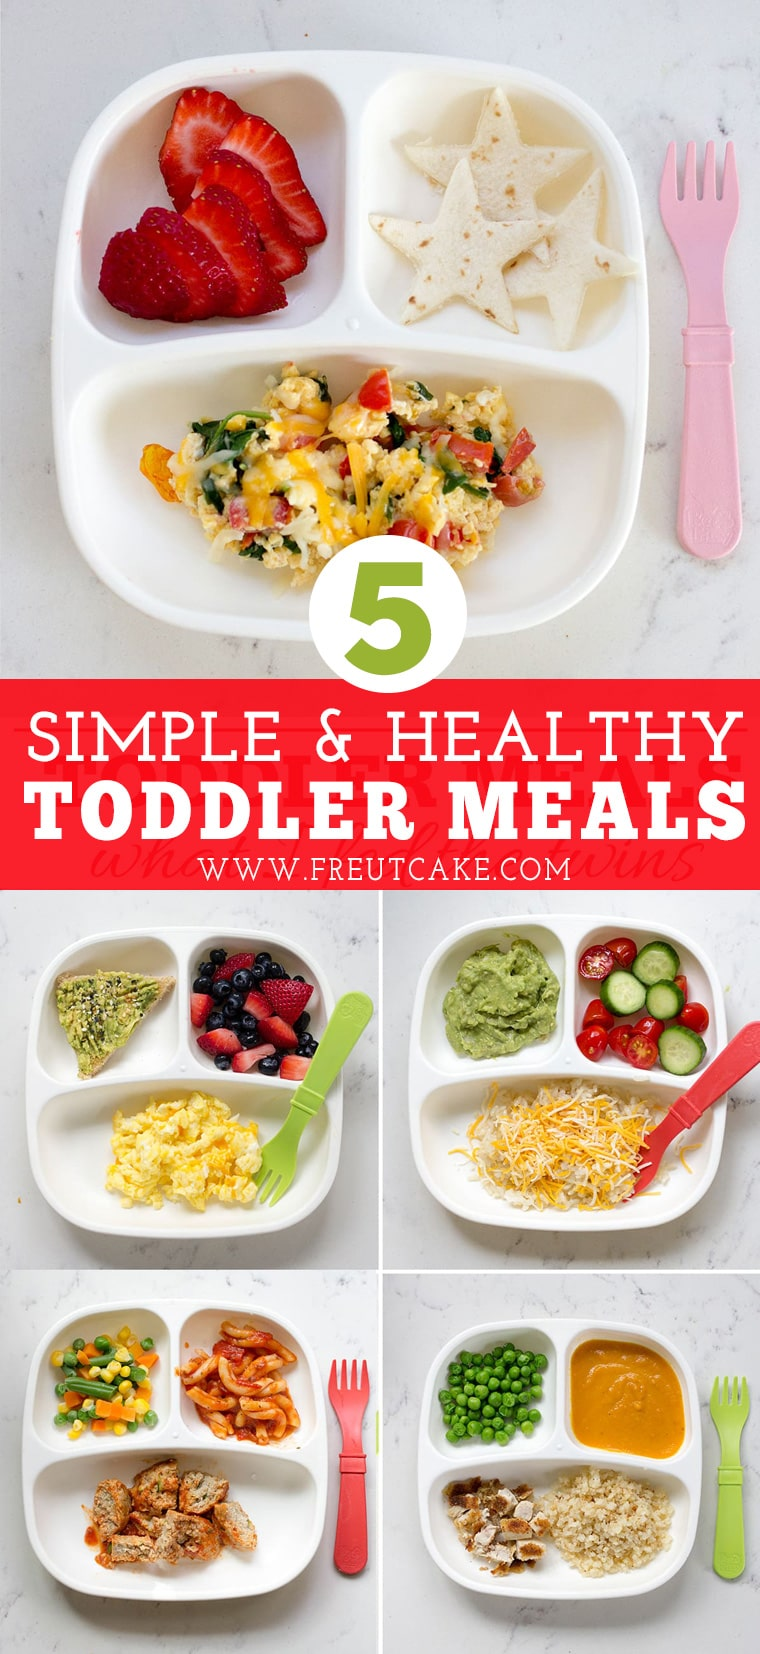 Elegant Meal Ideas For Toddlers Lunch